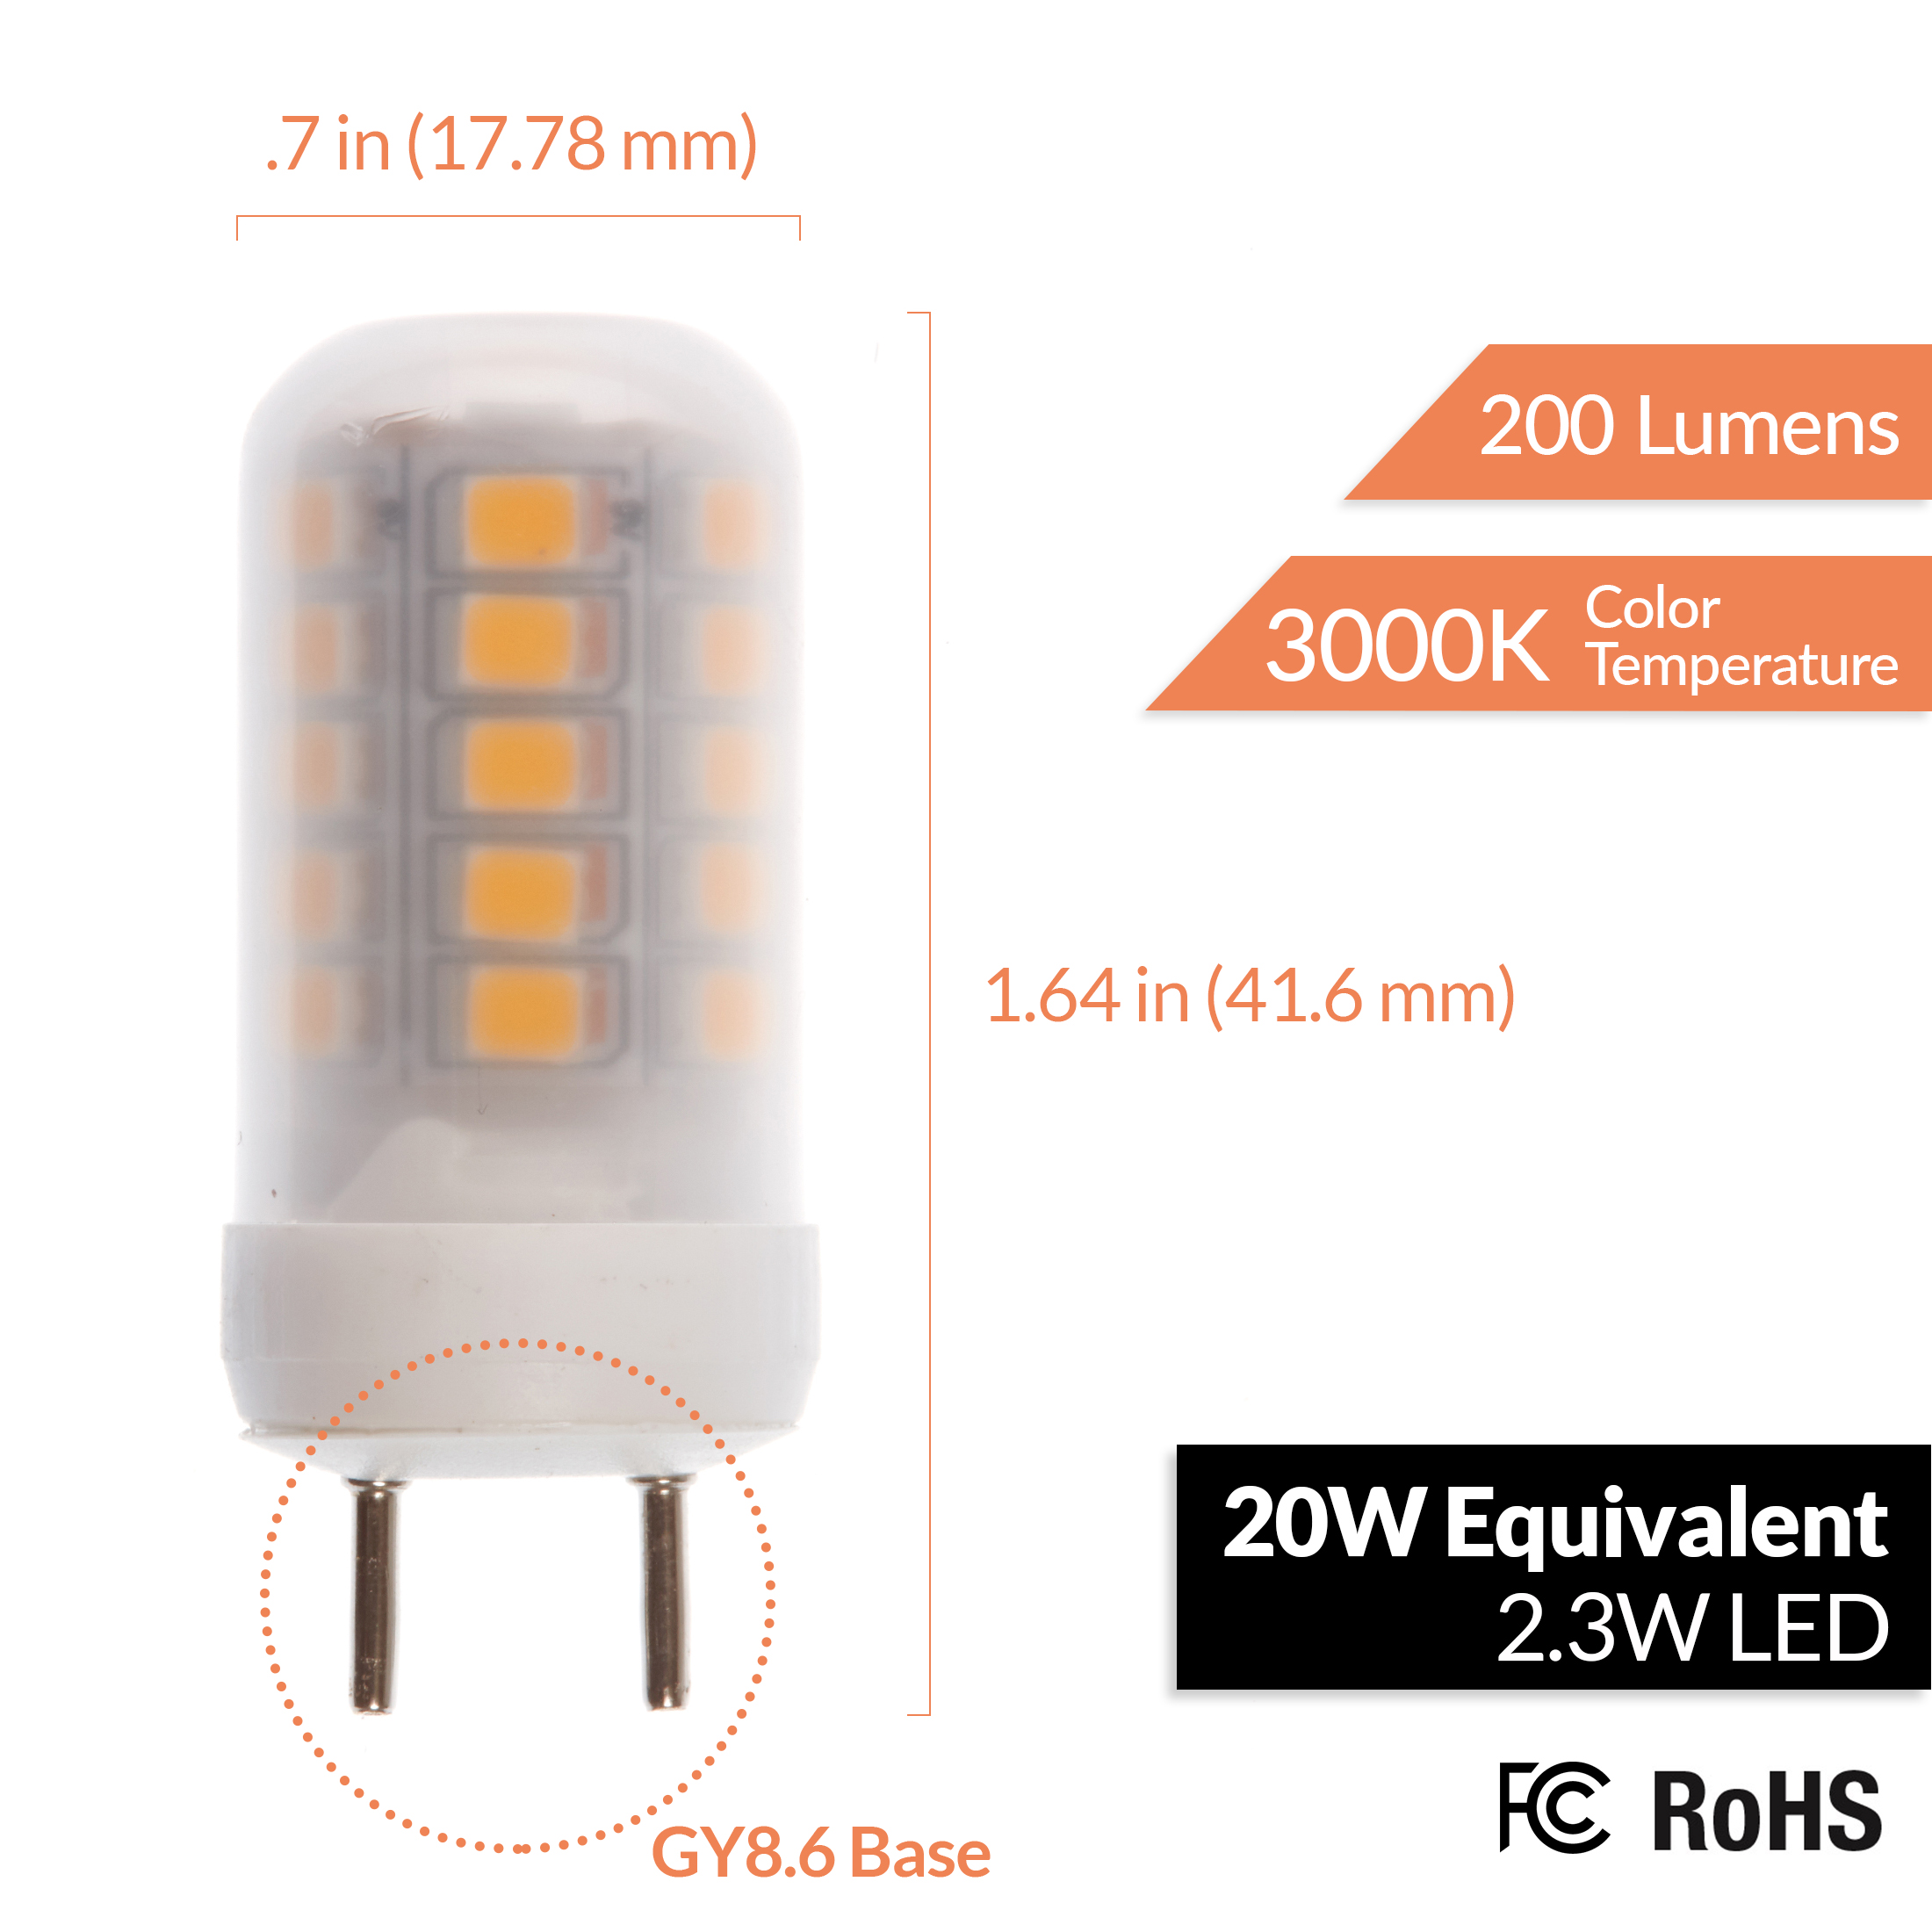 2 3w 20w Equivalent Gy8 2320 Led Bulb